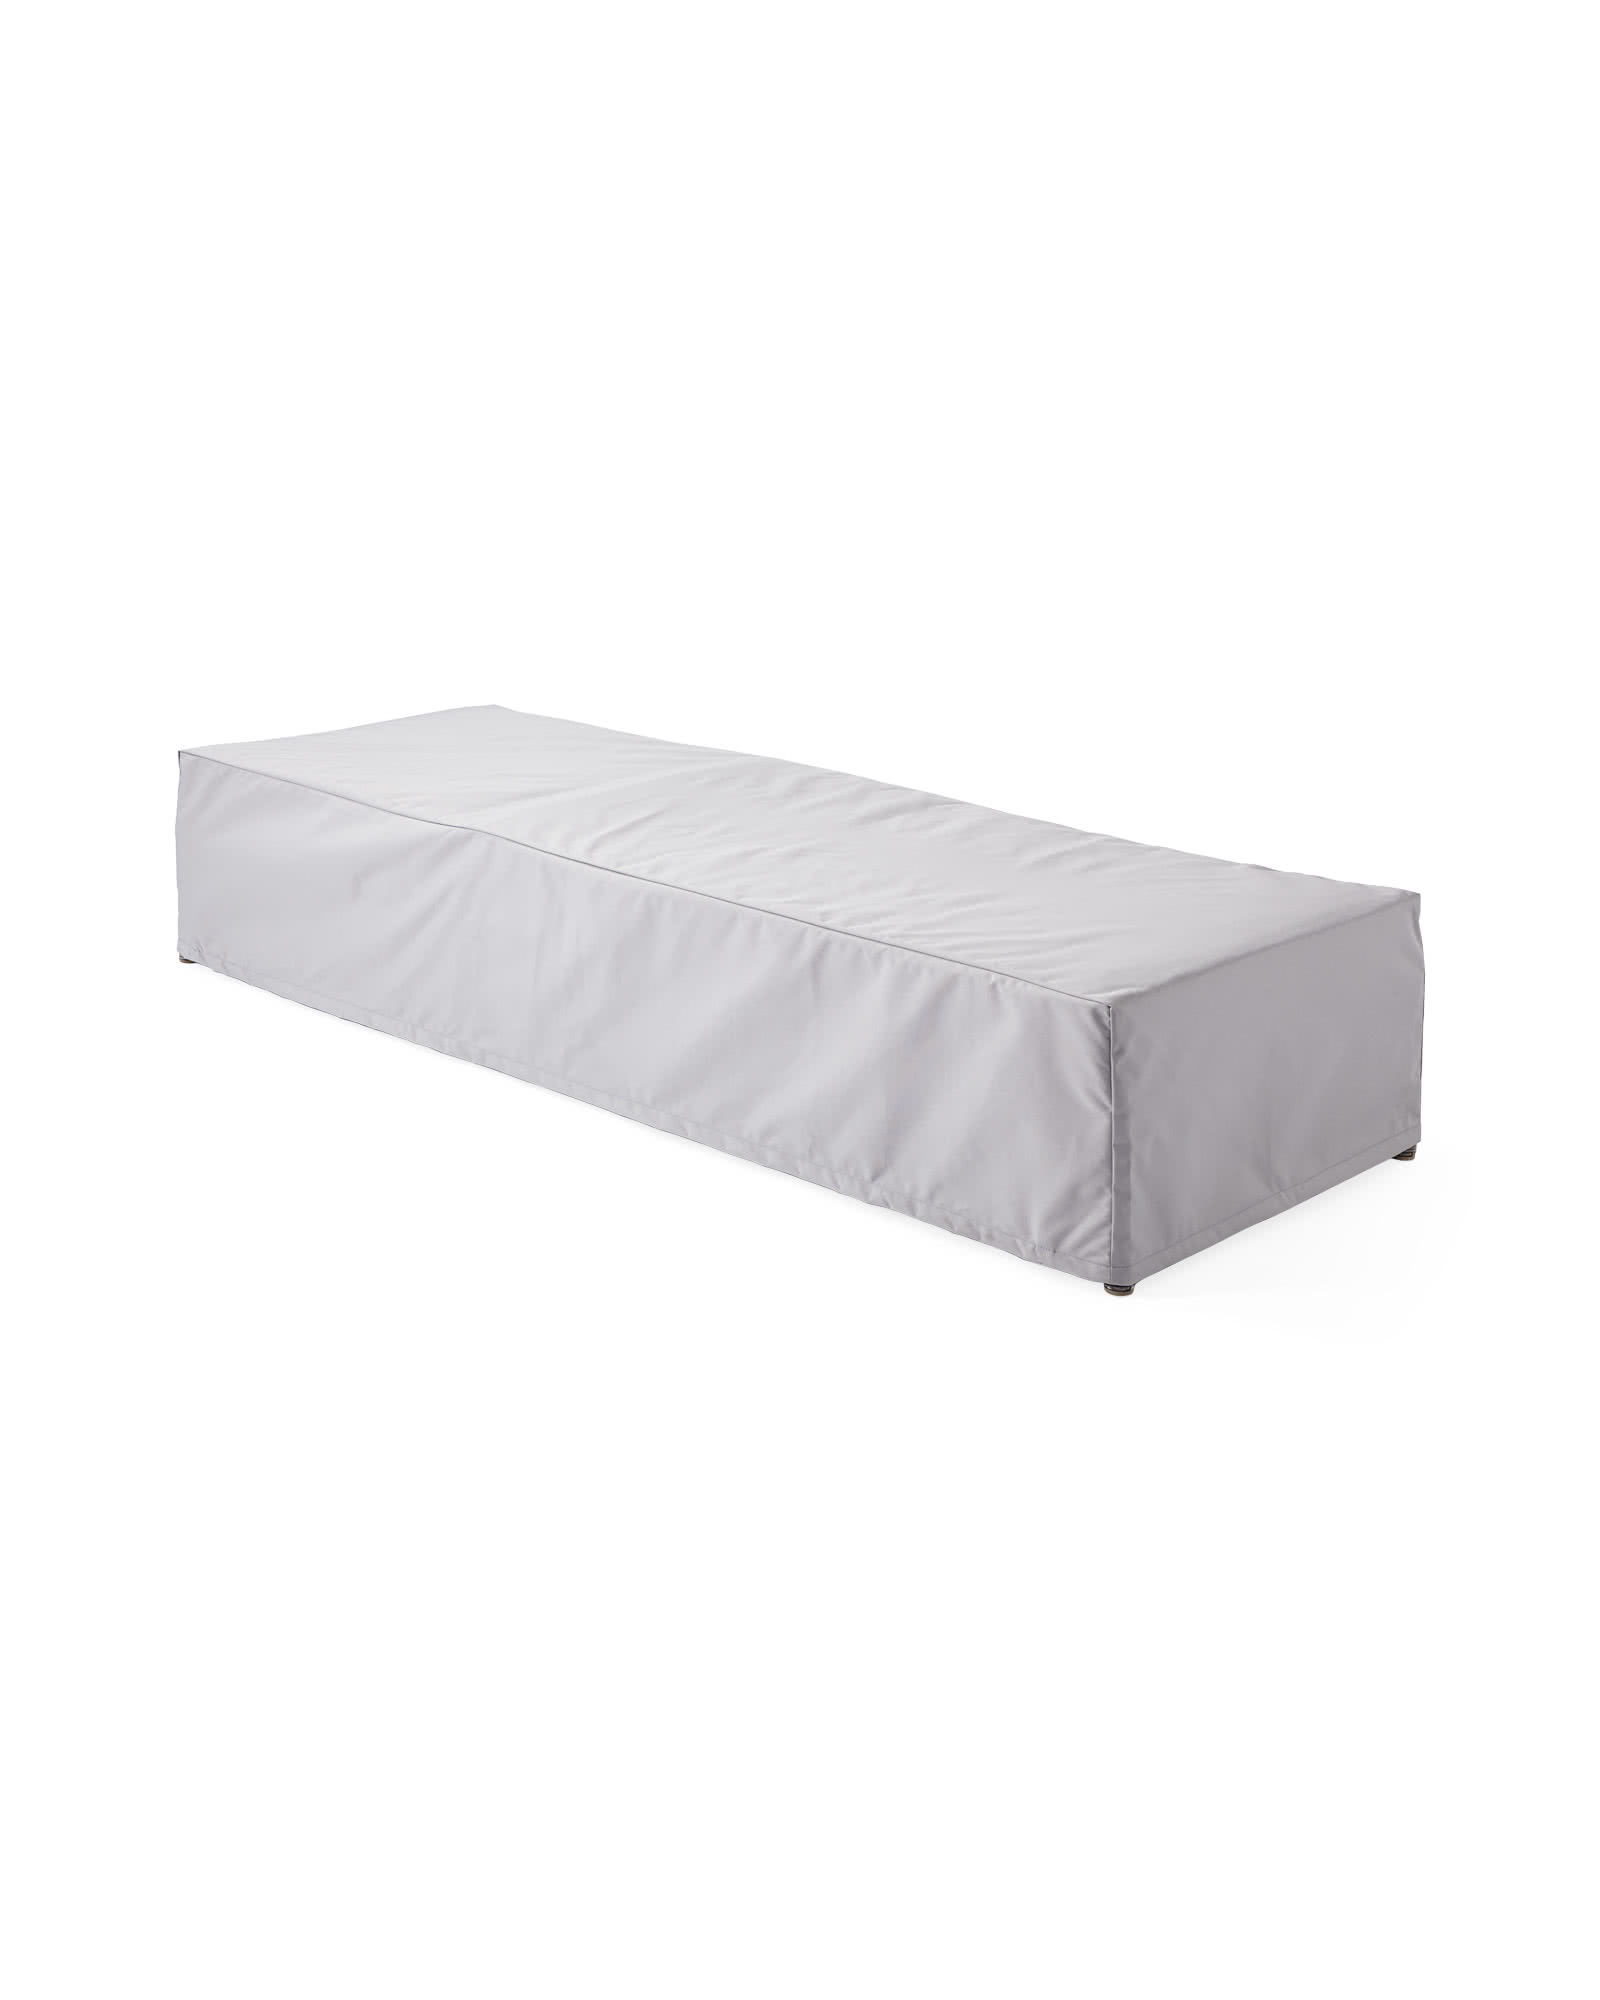 Protective Cover - Pacifica Chaise,